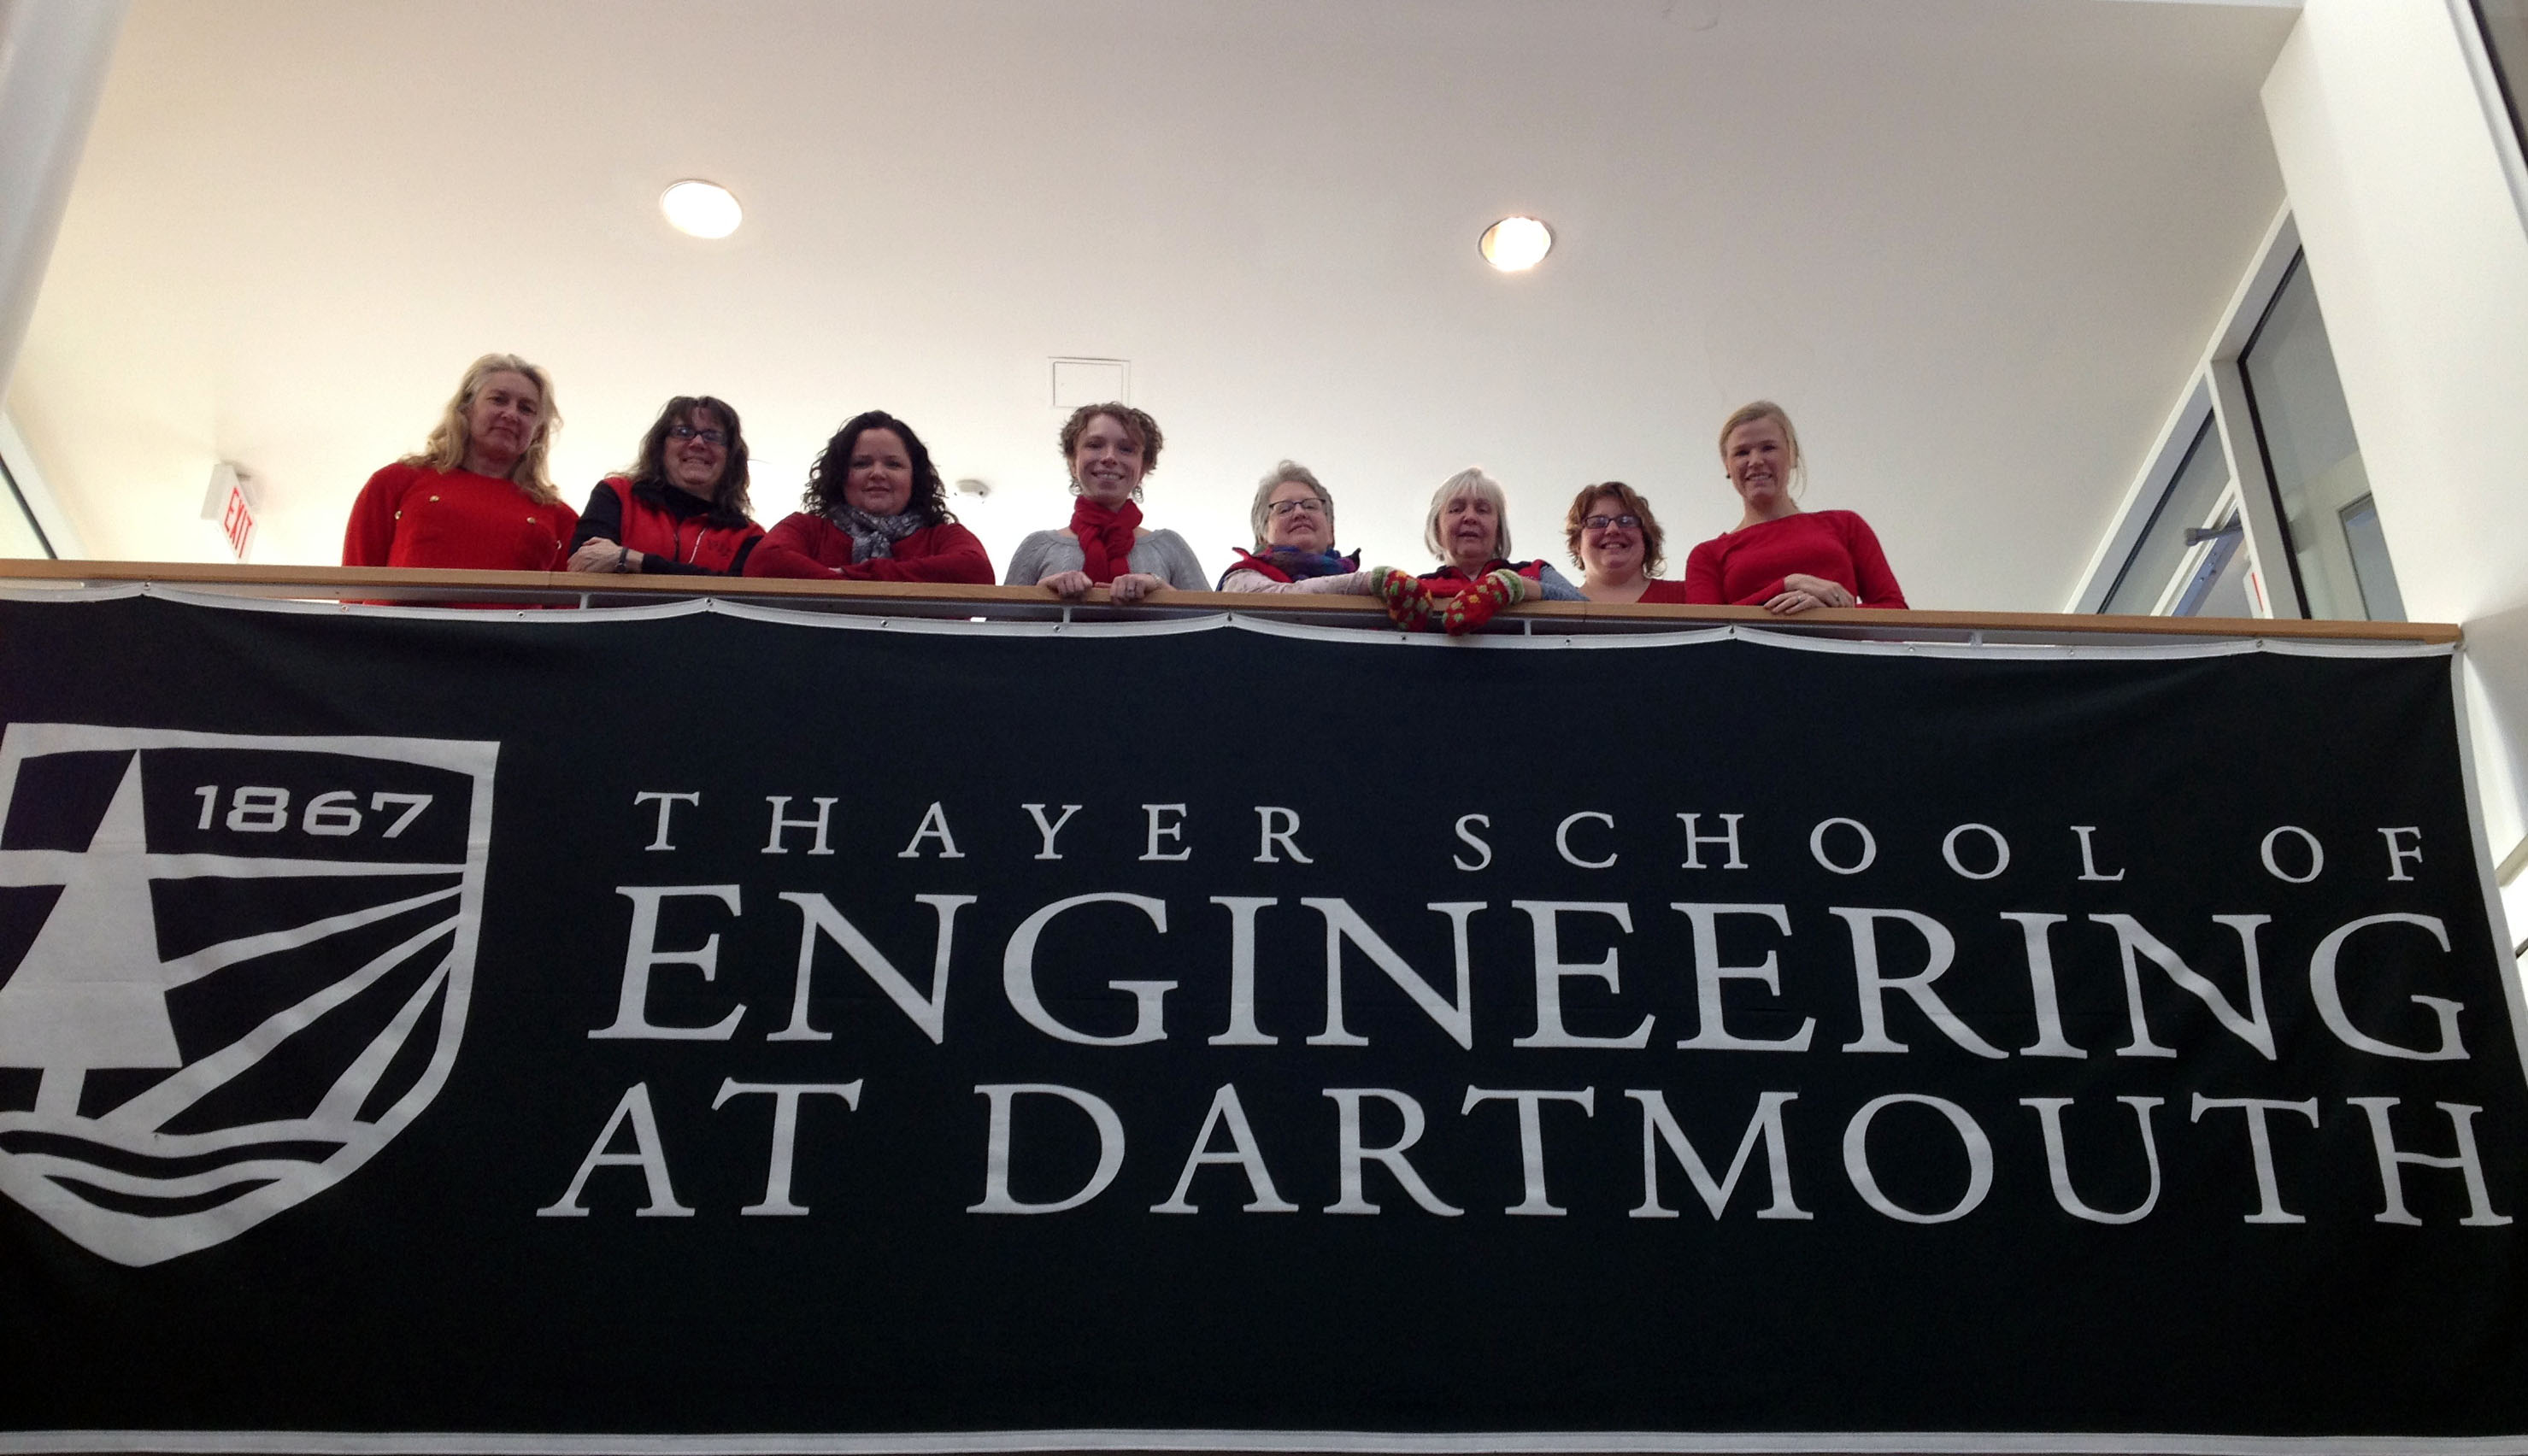 thayer wearing red on 2/7/2014